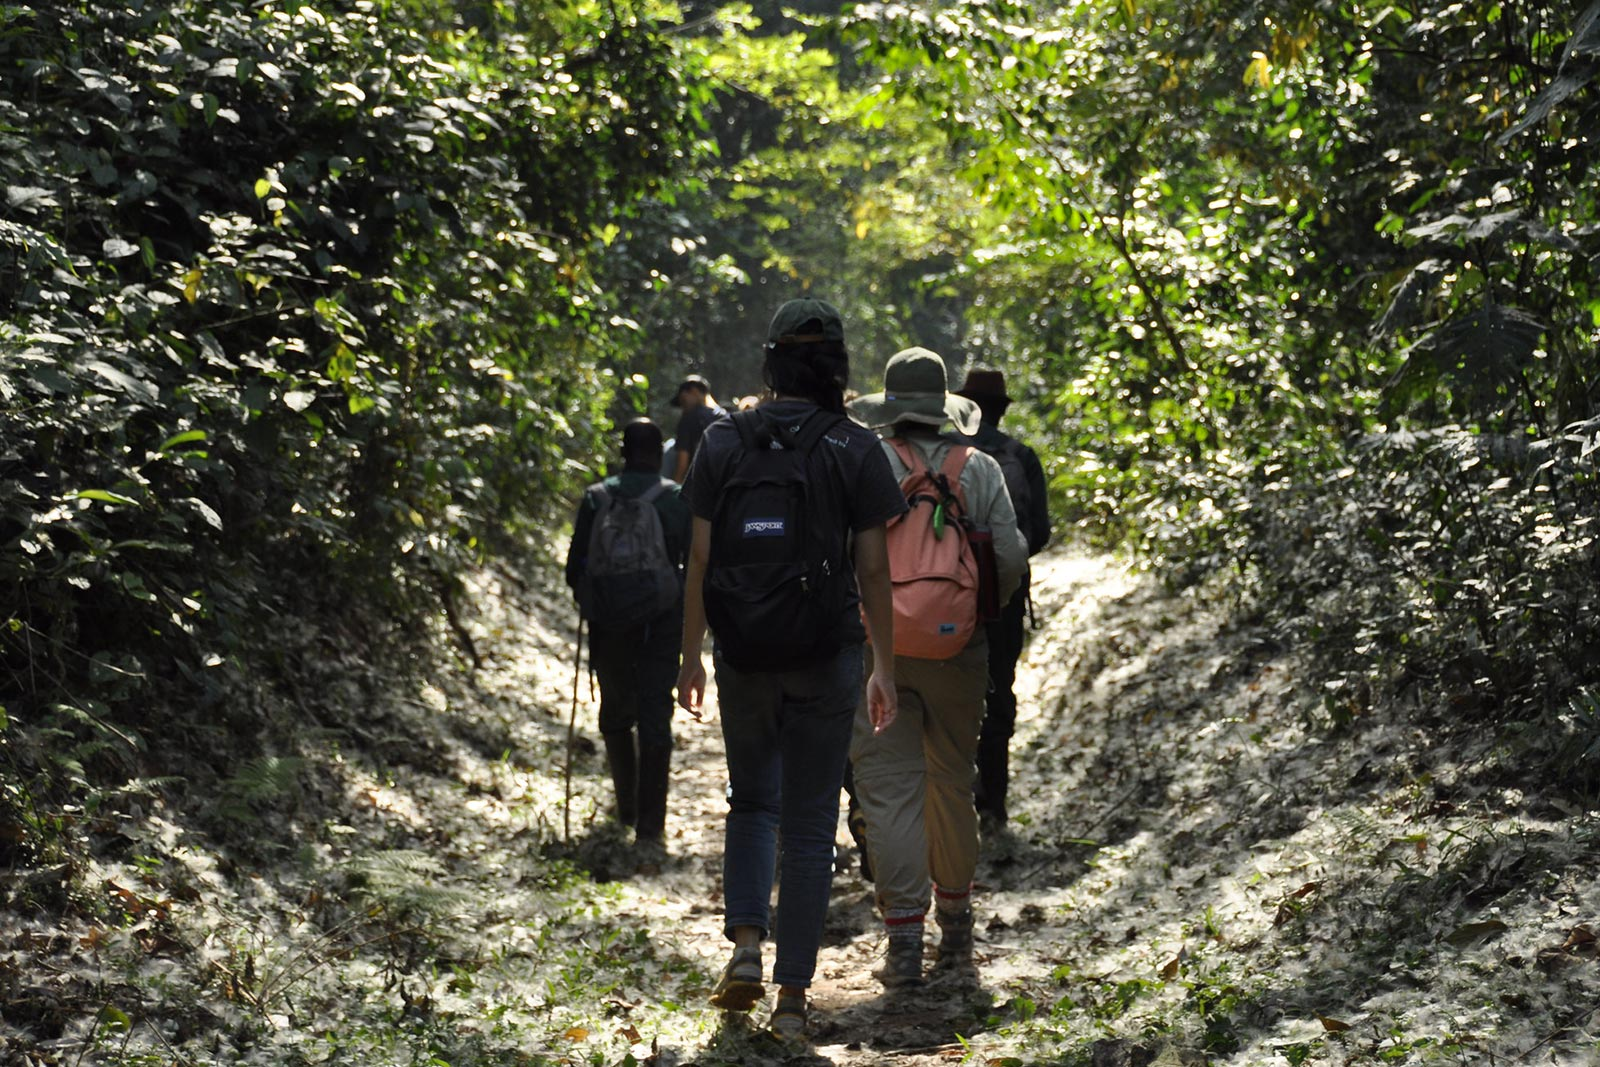 Day 4 — Chimpanzee trekking, Ishasha for tree climbing lions, then to Bwindi